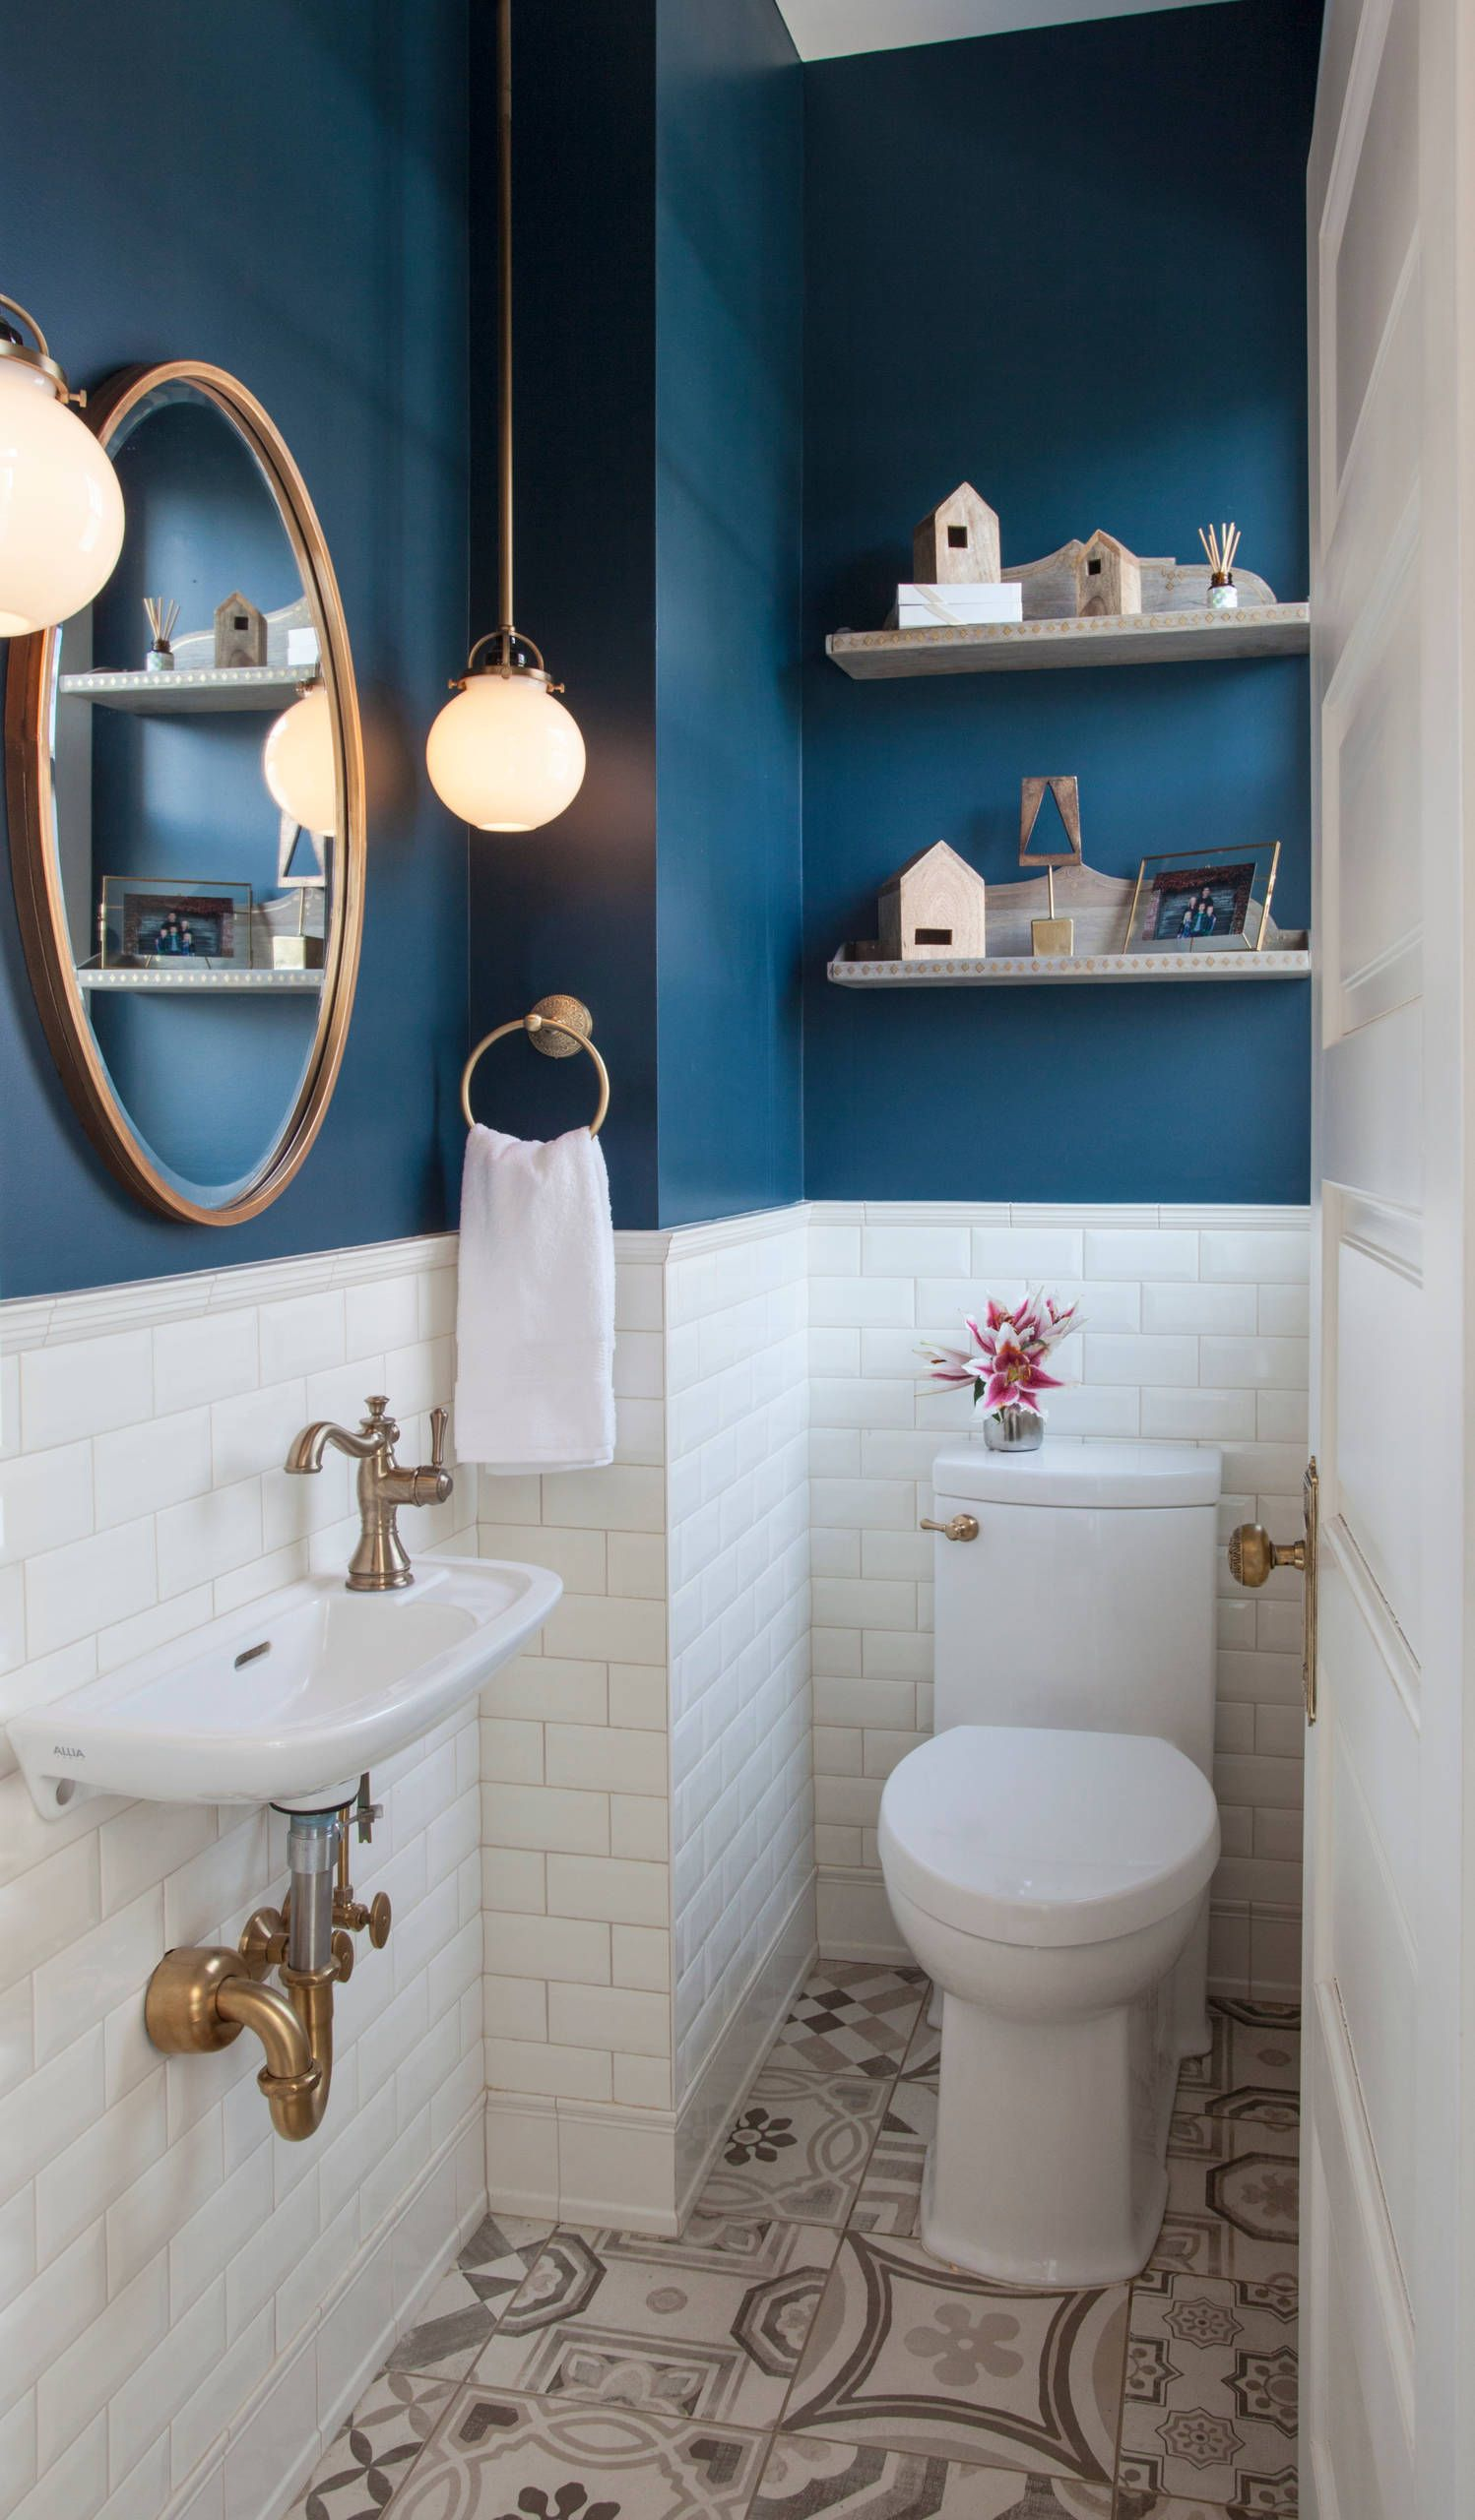 42 Small Bathroom Designs And Ideas Home Awakening Small Toilet Room Small Bathroom Bathroom Design Small